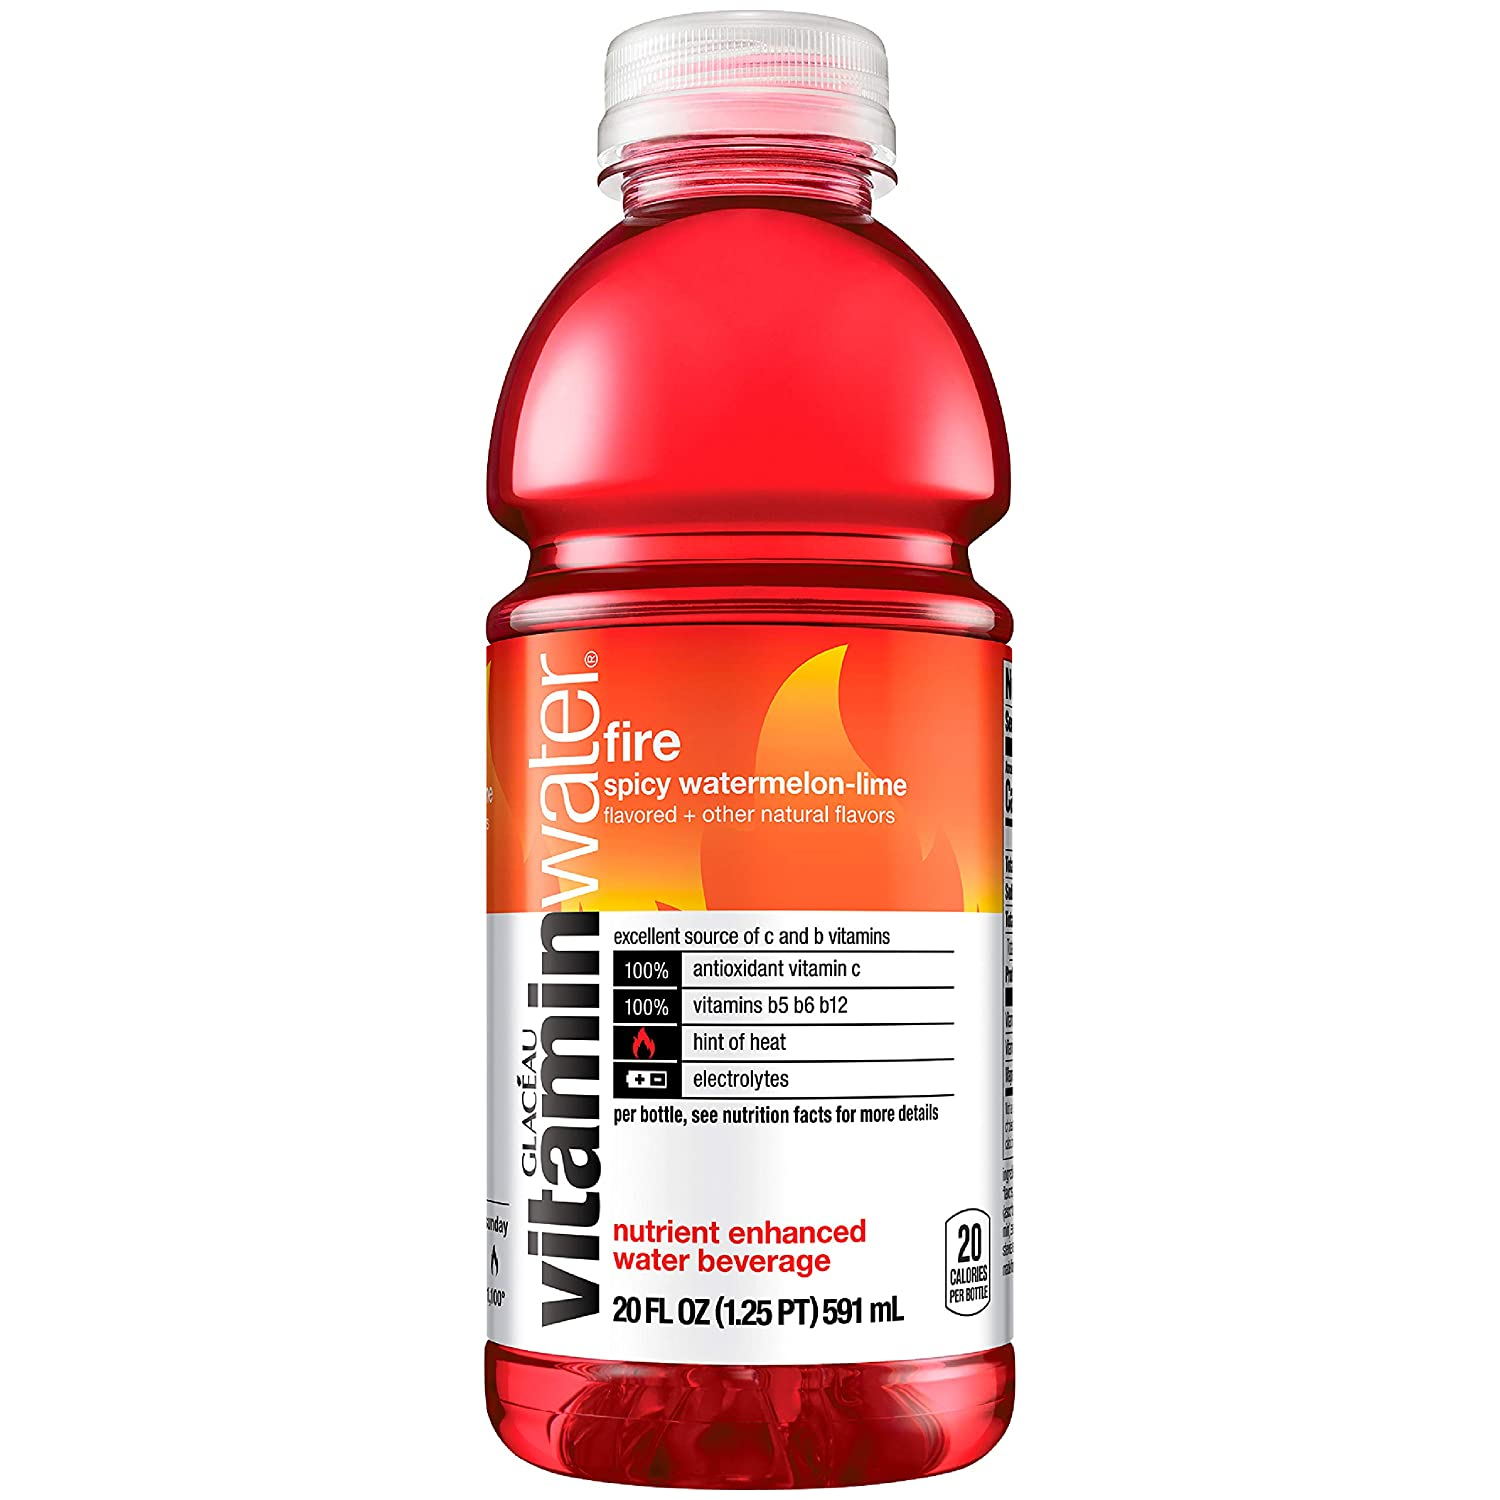 vitaminwater Fire Electrolyte Enhanced Water With Vitamins Spicy Watermelon Drink, 20 fl oz